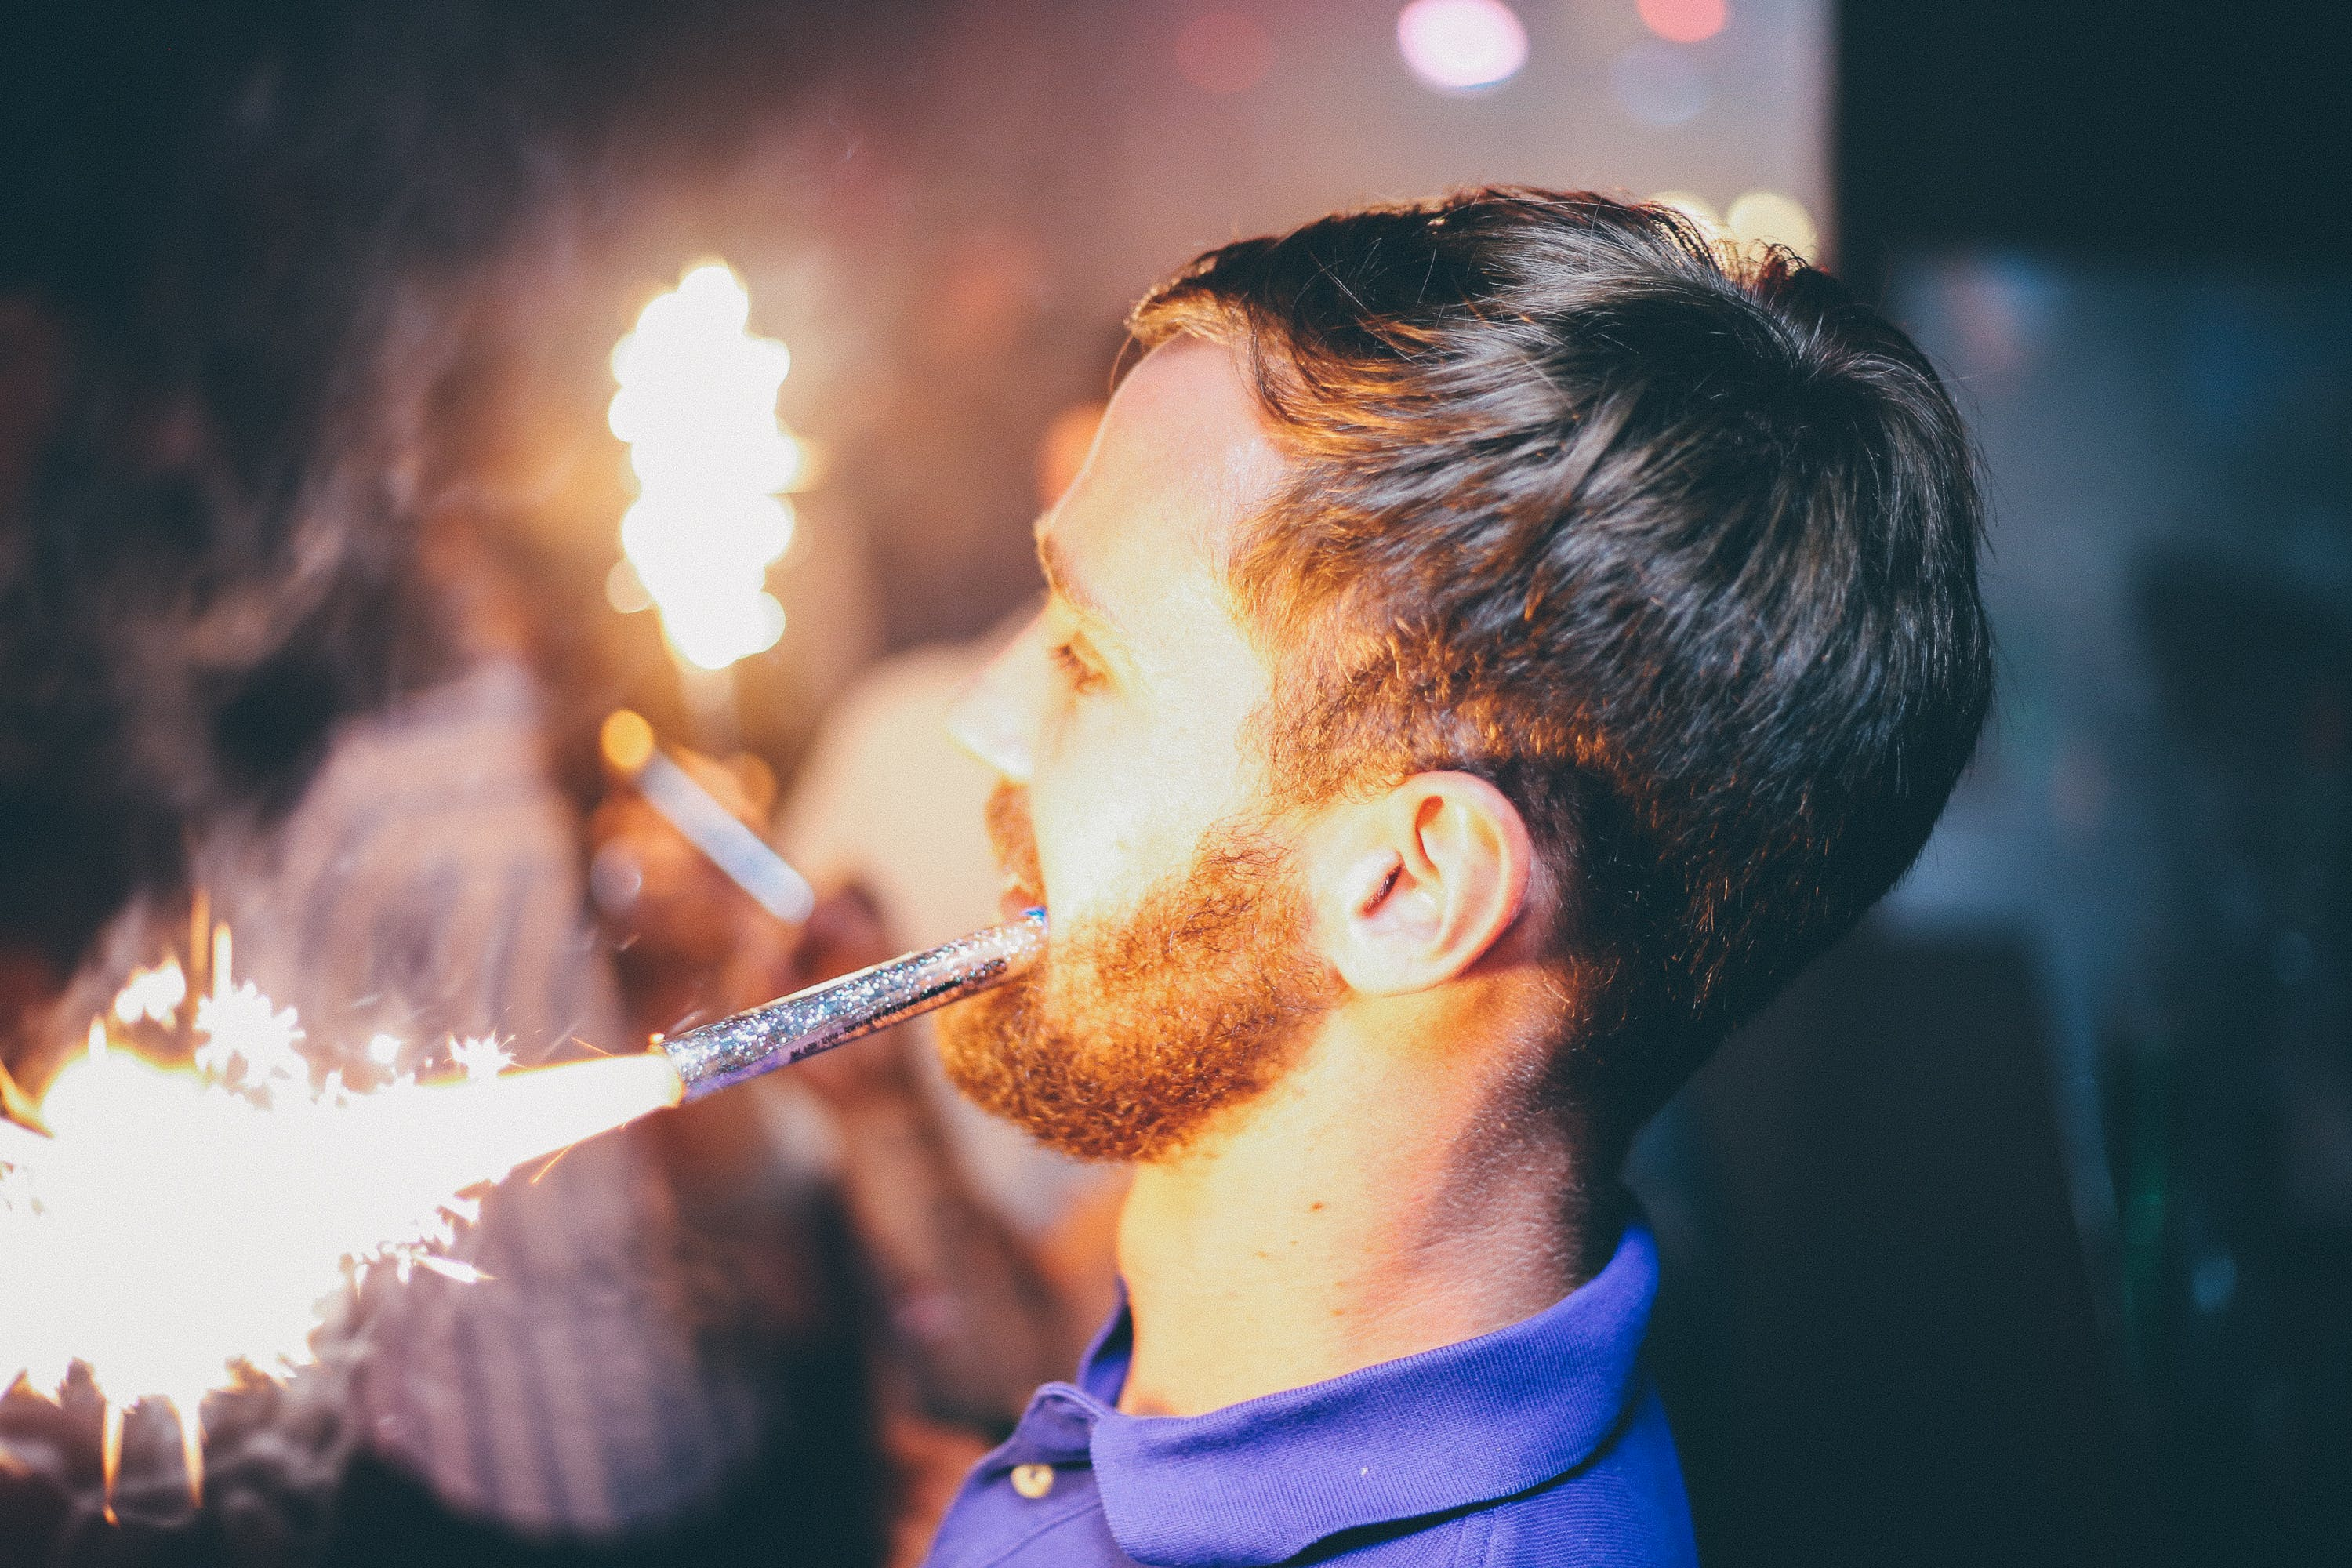 Person Holding Fireworks by Mouth